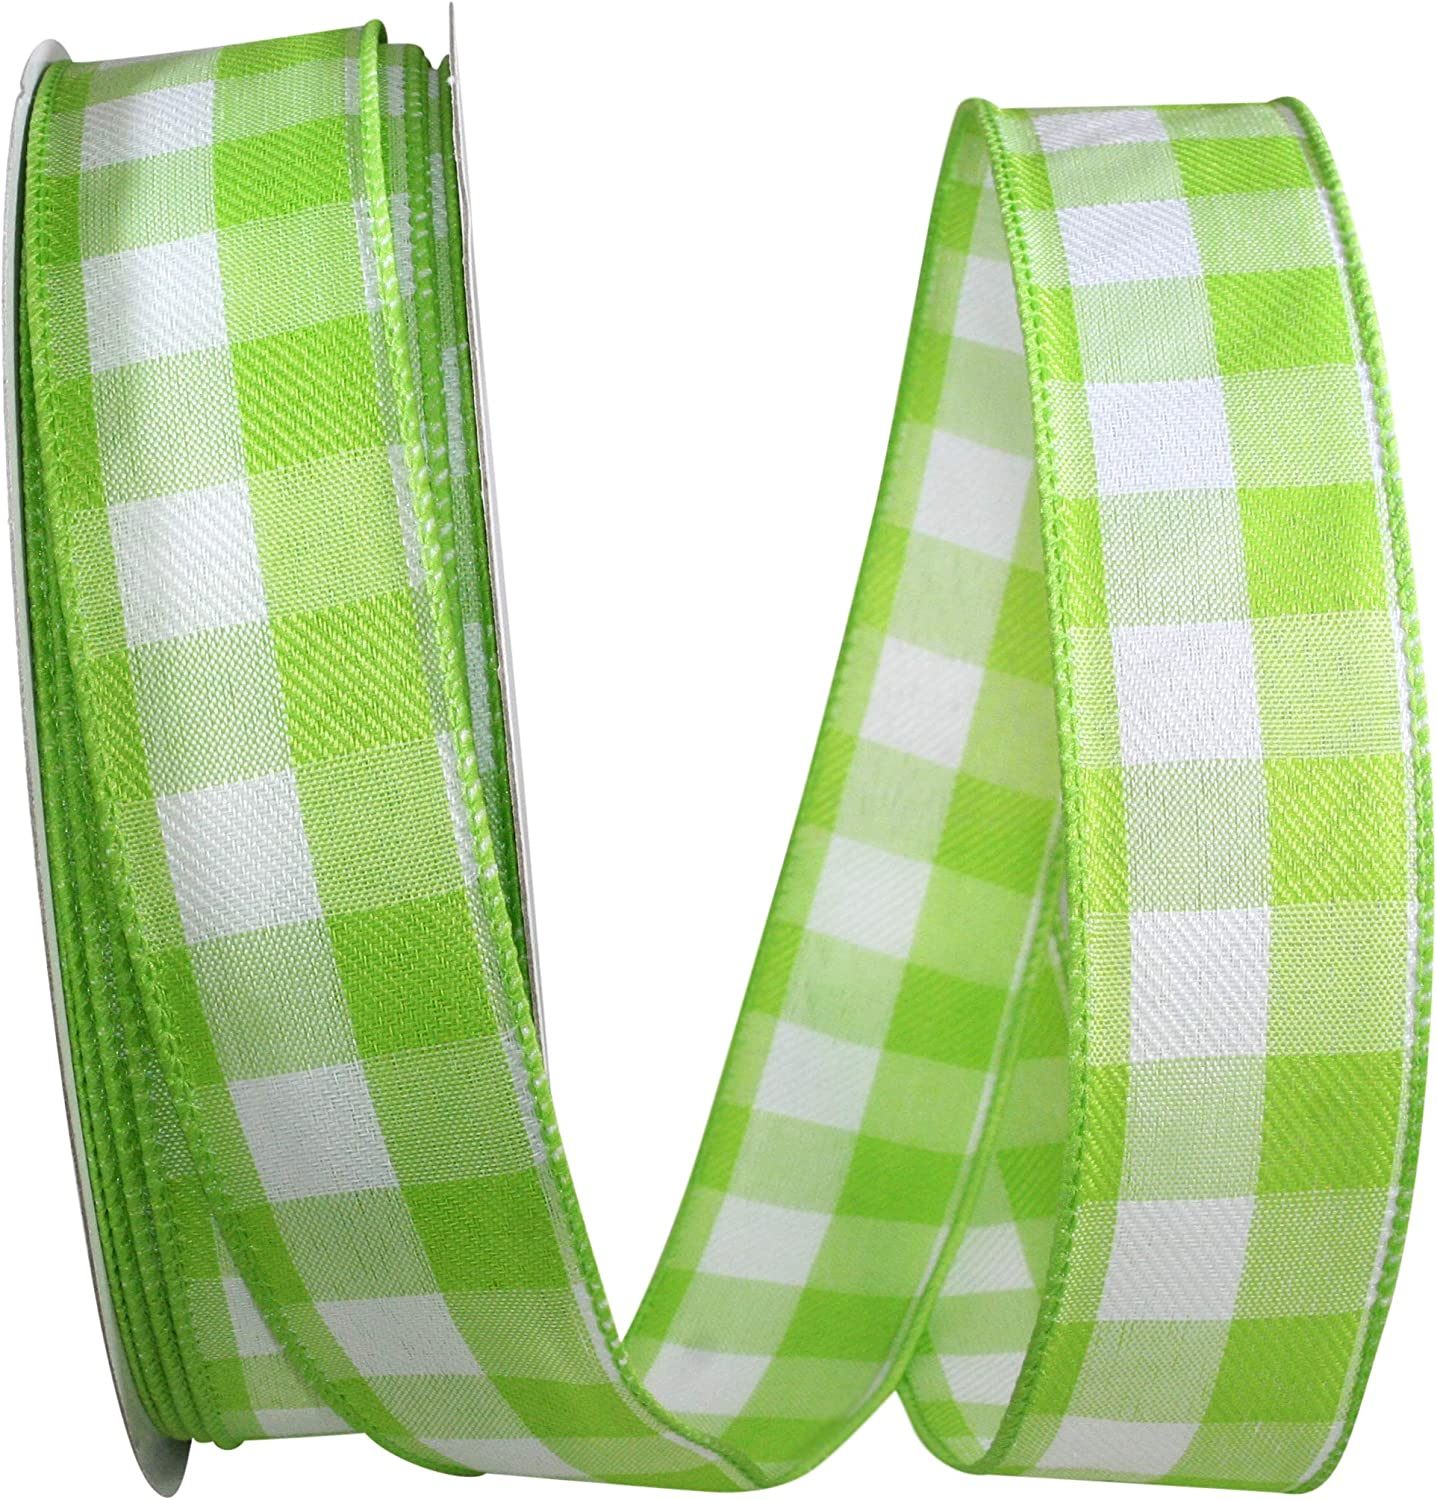 Reliant Ribbon Celine Plaid Twill Wired Edge Ribbon, 1-1/2 Inch X 50 Yards, Lime